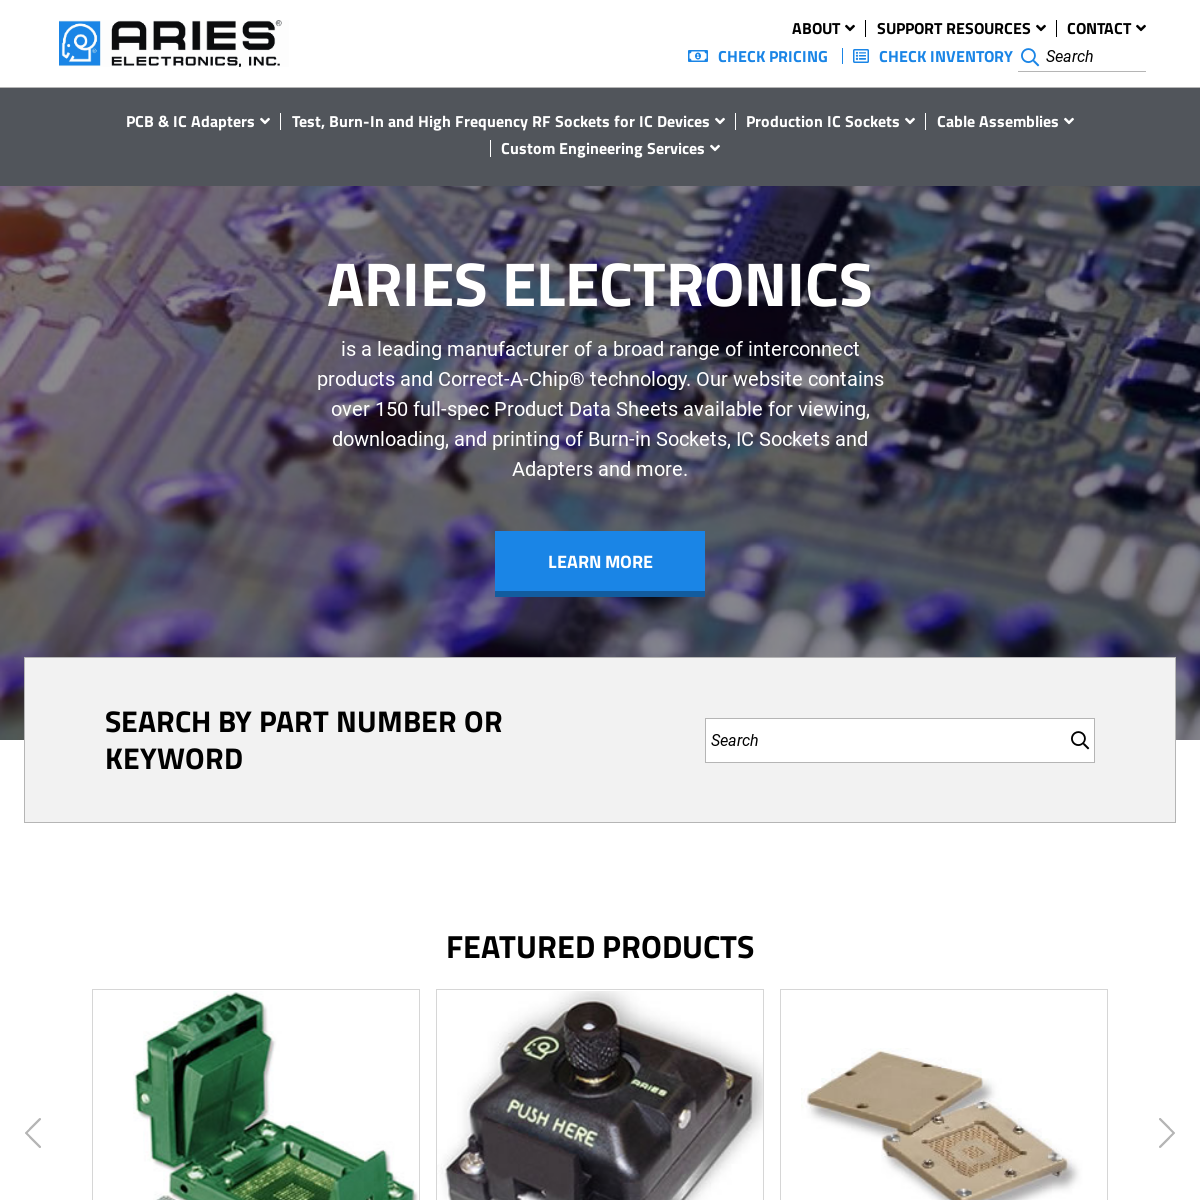 Aries Electronics - Sockets and Adapters for Semiconductor Test and Burn-in